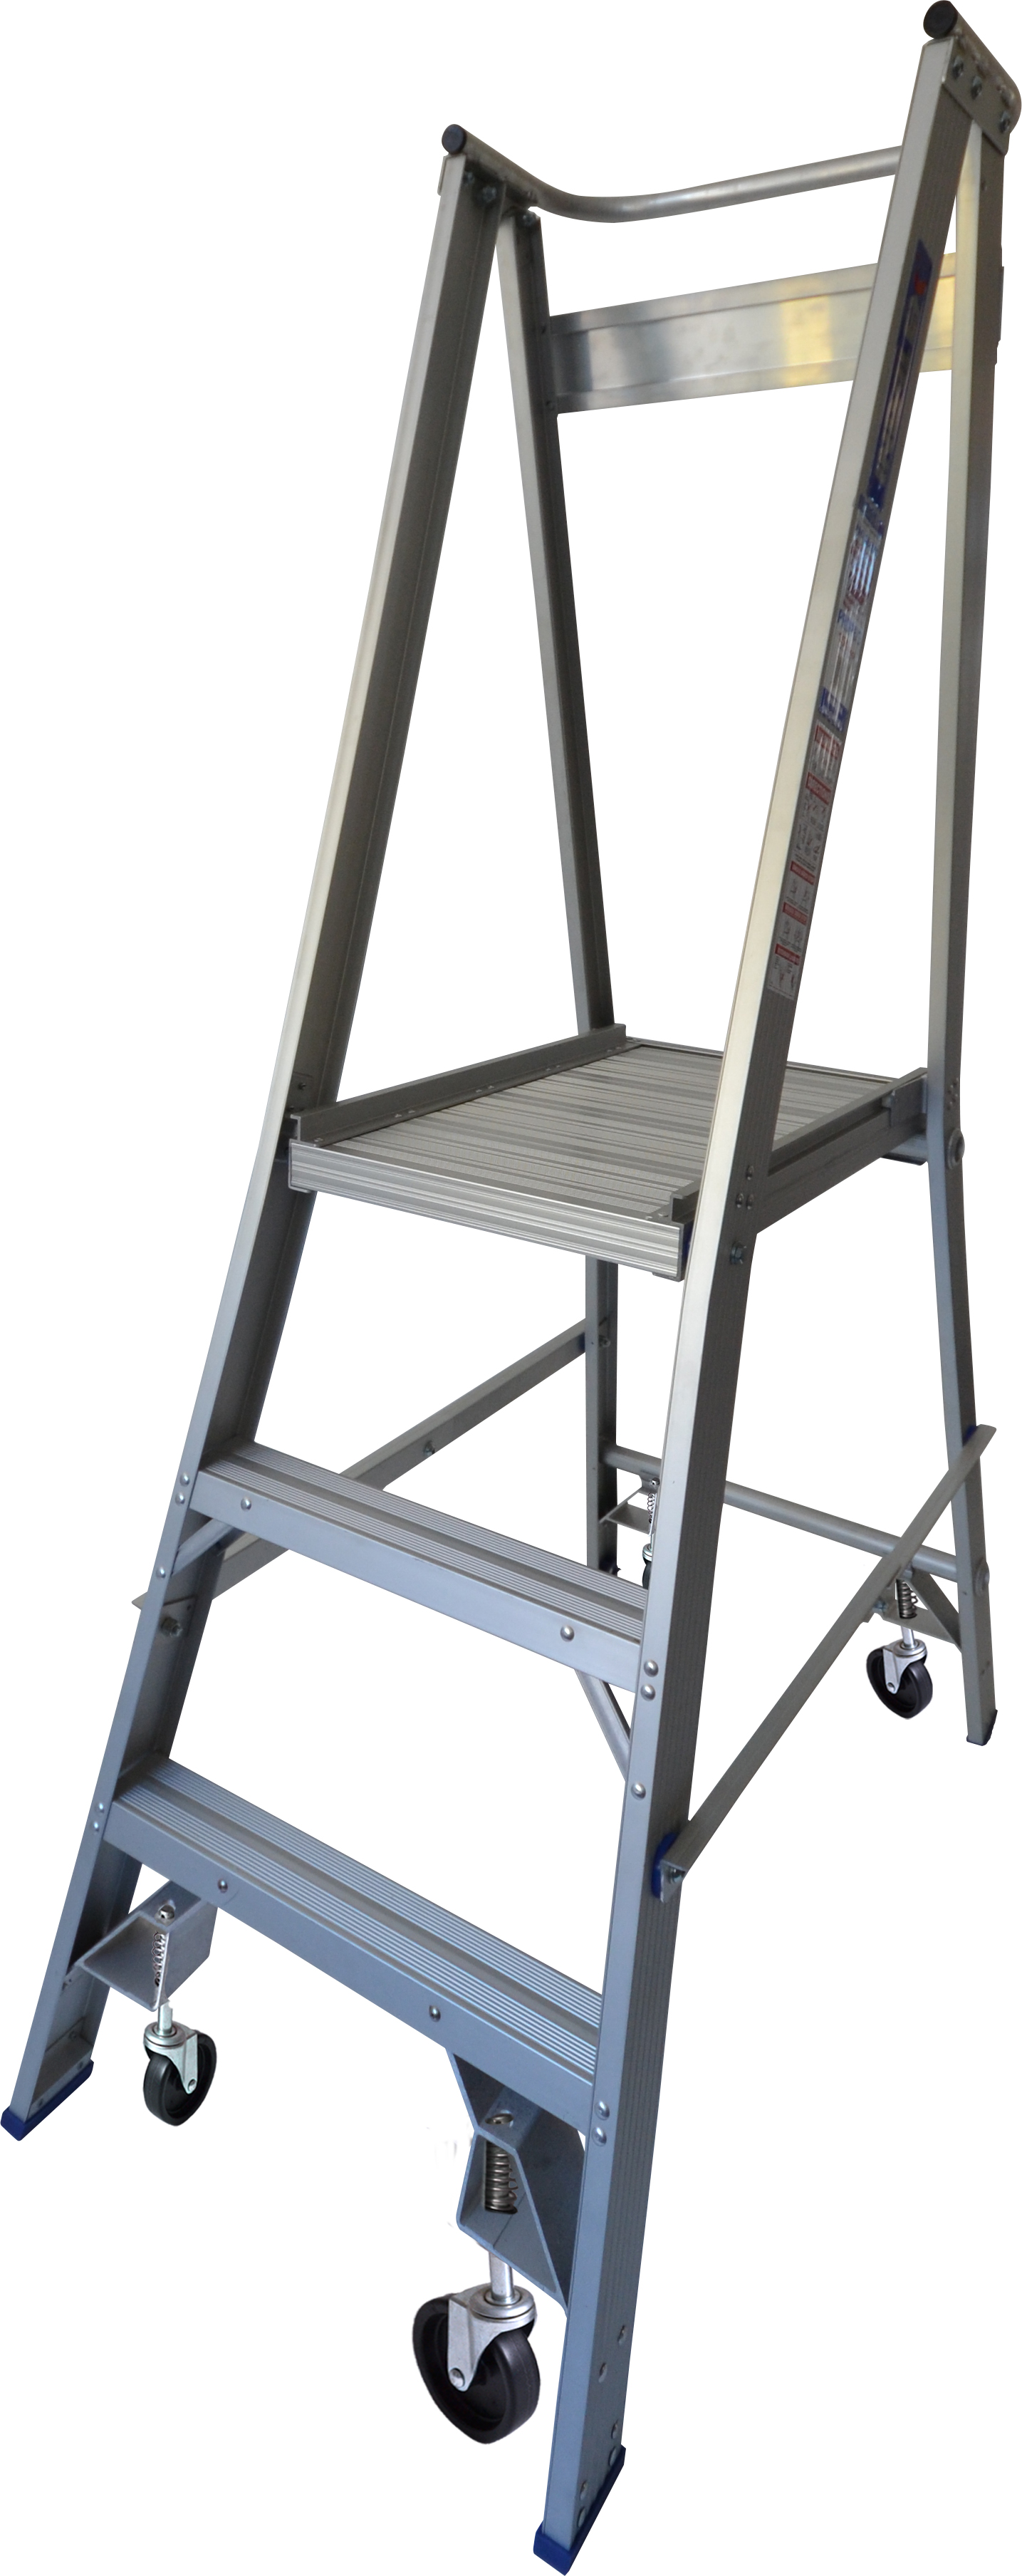 Our 3 step aluminium platform ladders have 150kg capacity, 0.6M platform height & 1.5M total height. It's constructed using high tensile structural aluminium alloy, solid 90cm high guard rail, anti slip work platform & moulded feet for added safety.